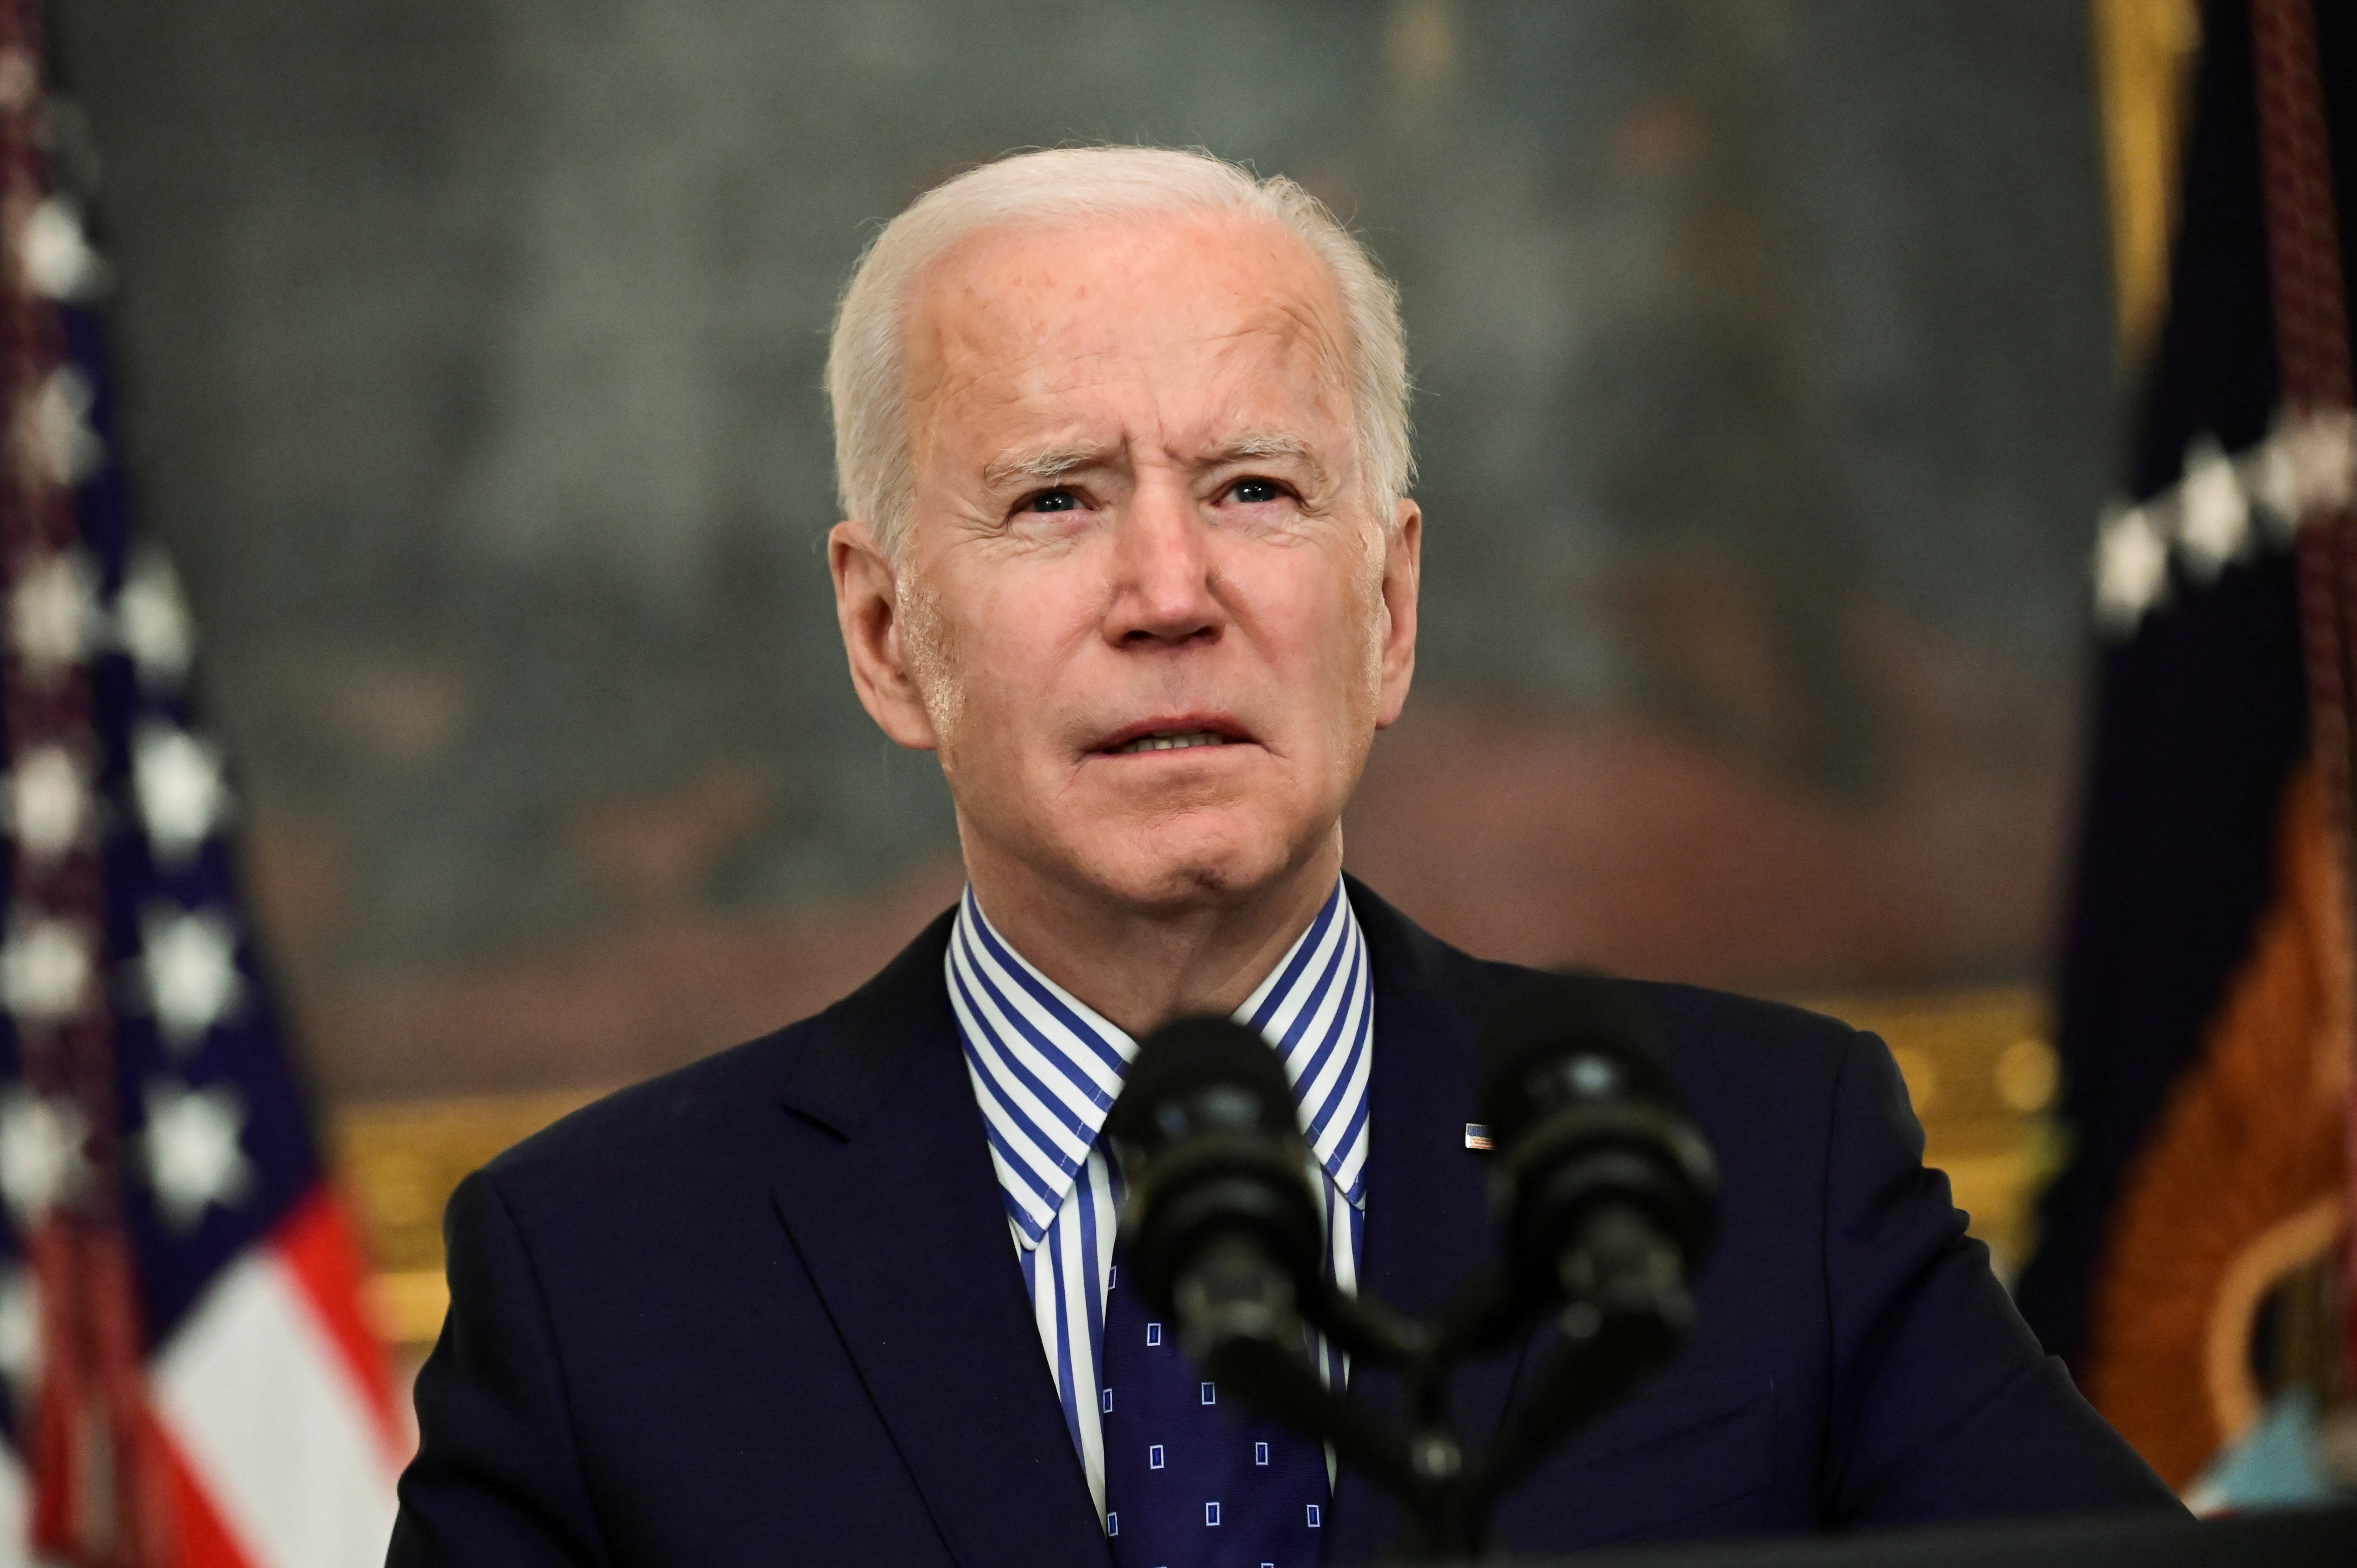 President Biden makes remarks from the White House after his coronavirus pandemic relief legislation passed in the Senate, in Washington, U.S. March 6, 2021. REUTERS/Erin Scott